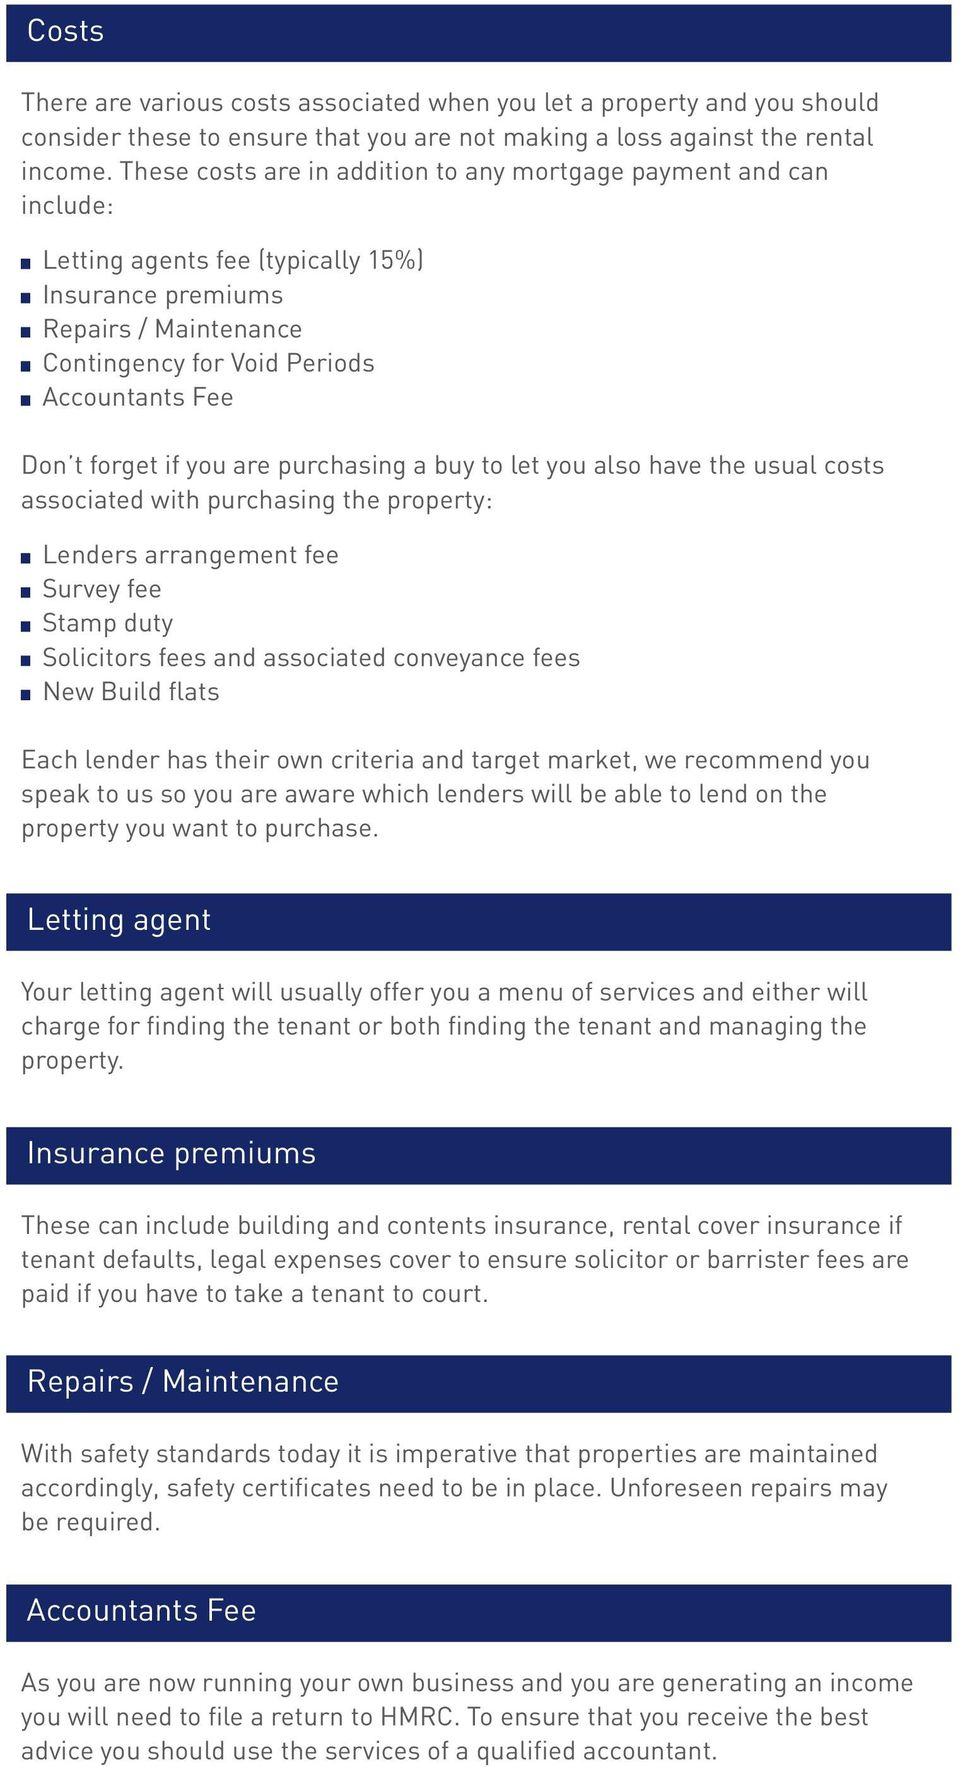 forget if you are purchasing a buy to let you also have the usual costs associated with purchasing the property: Lenders arrangement fee Survey fee Stamp duty Solicitors fees and associated